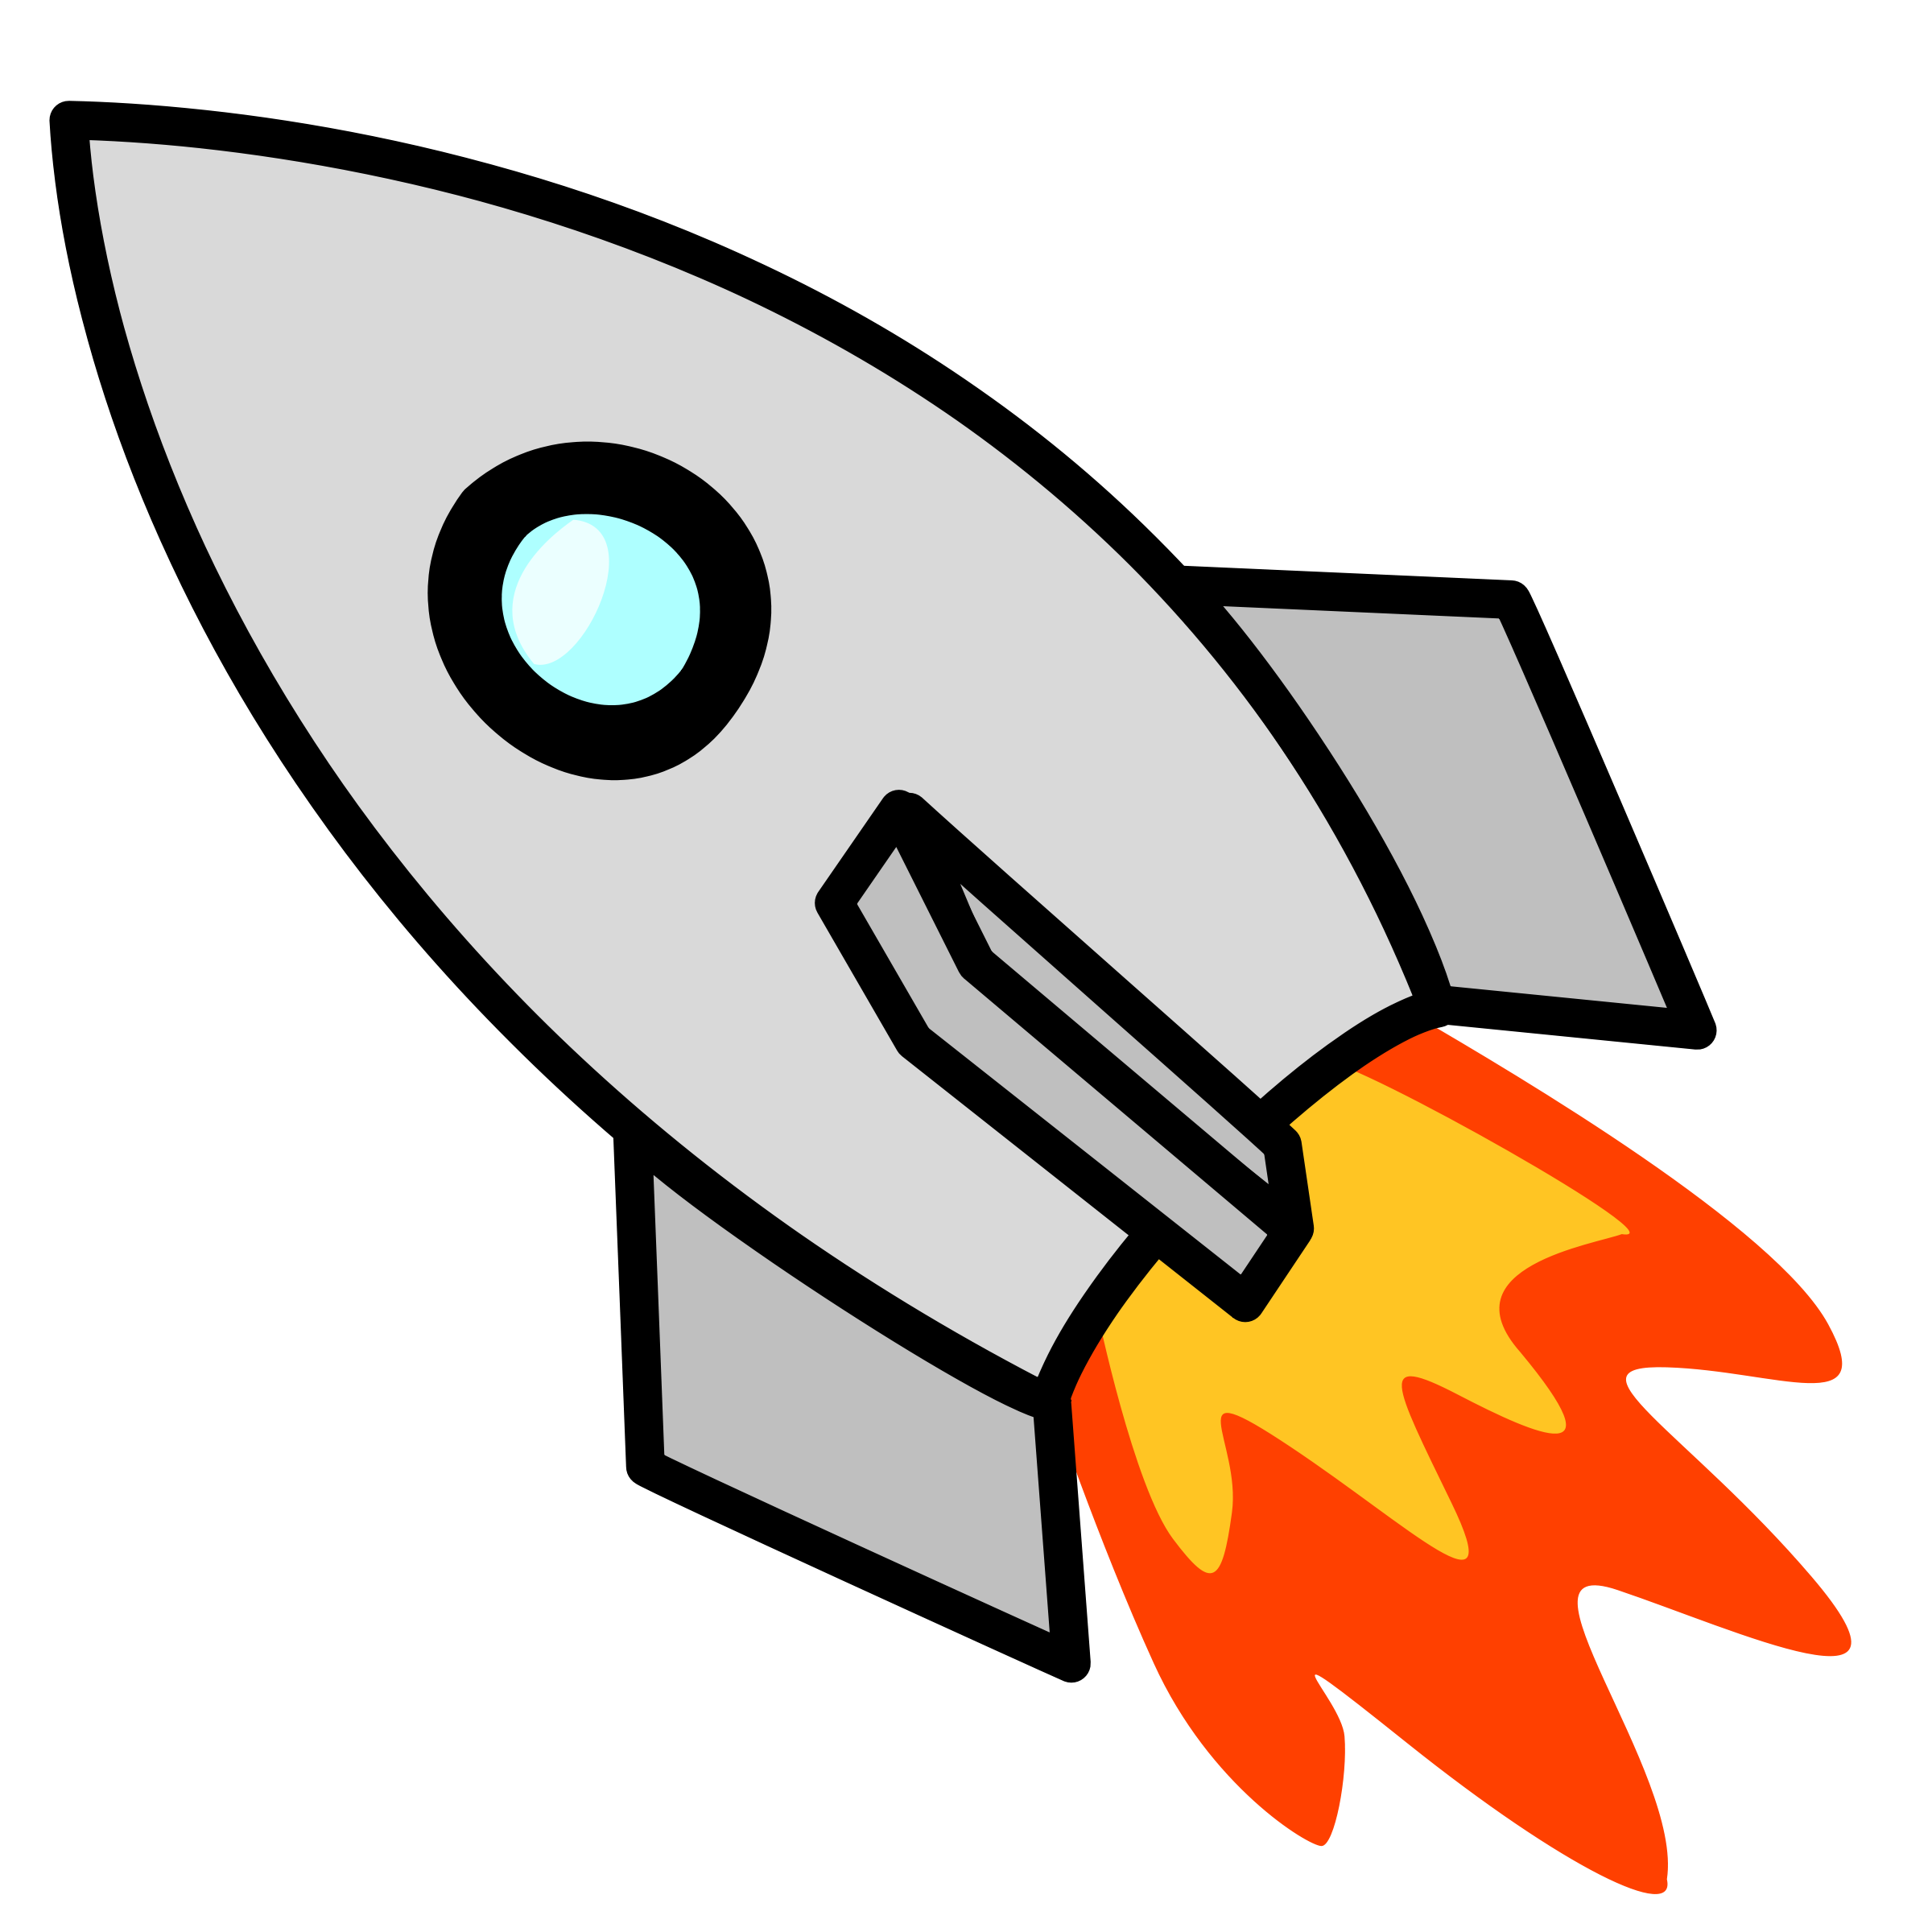 images for cute rocket clipart [ 2400 x 2400 Pixel ]